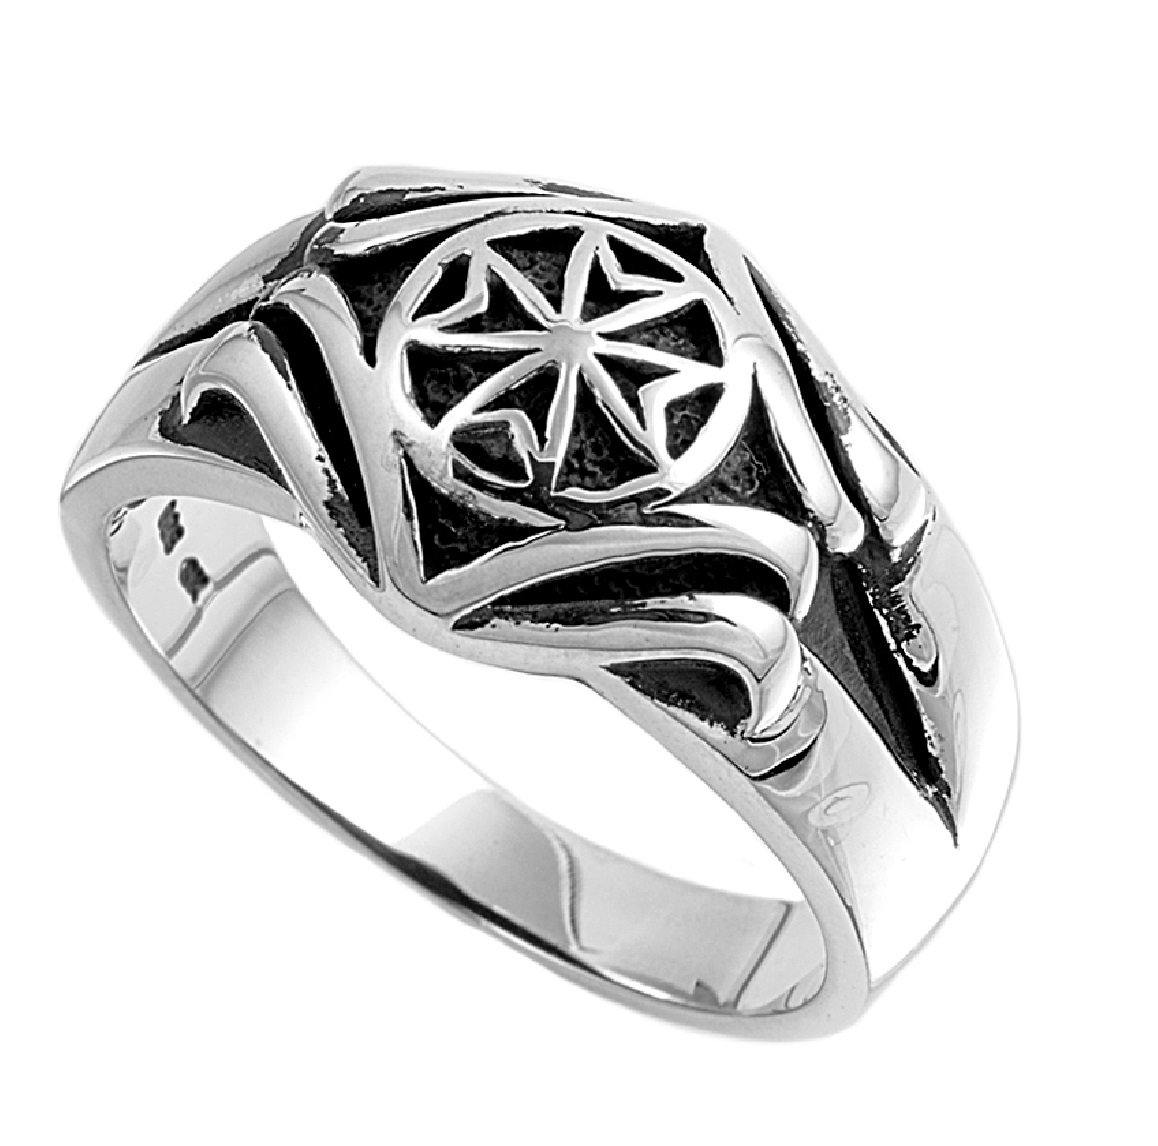 925 Sterling Silver Maltese Cross Ring Size 10